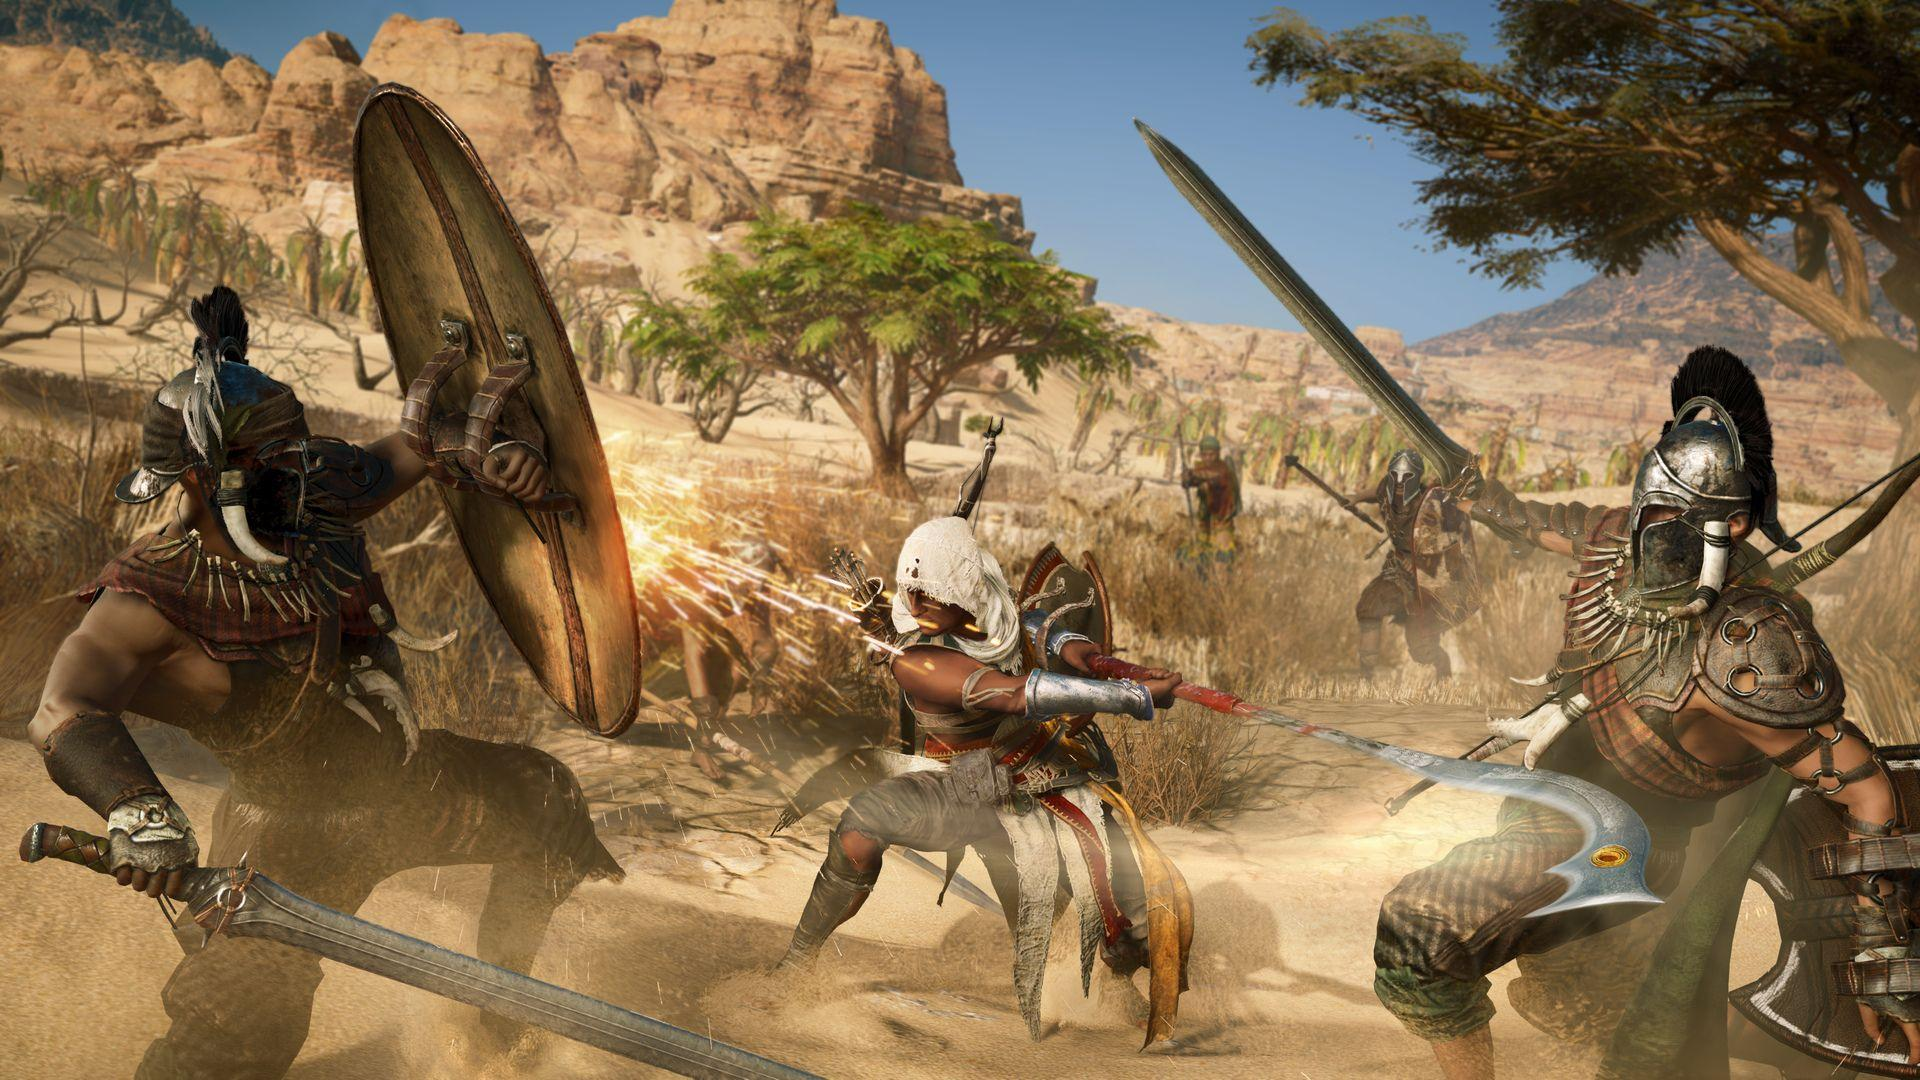 Dive into Egypt with our first play of Assassin's Creed Origins